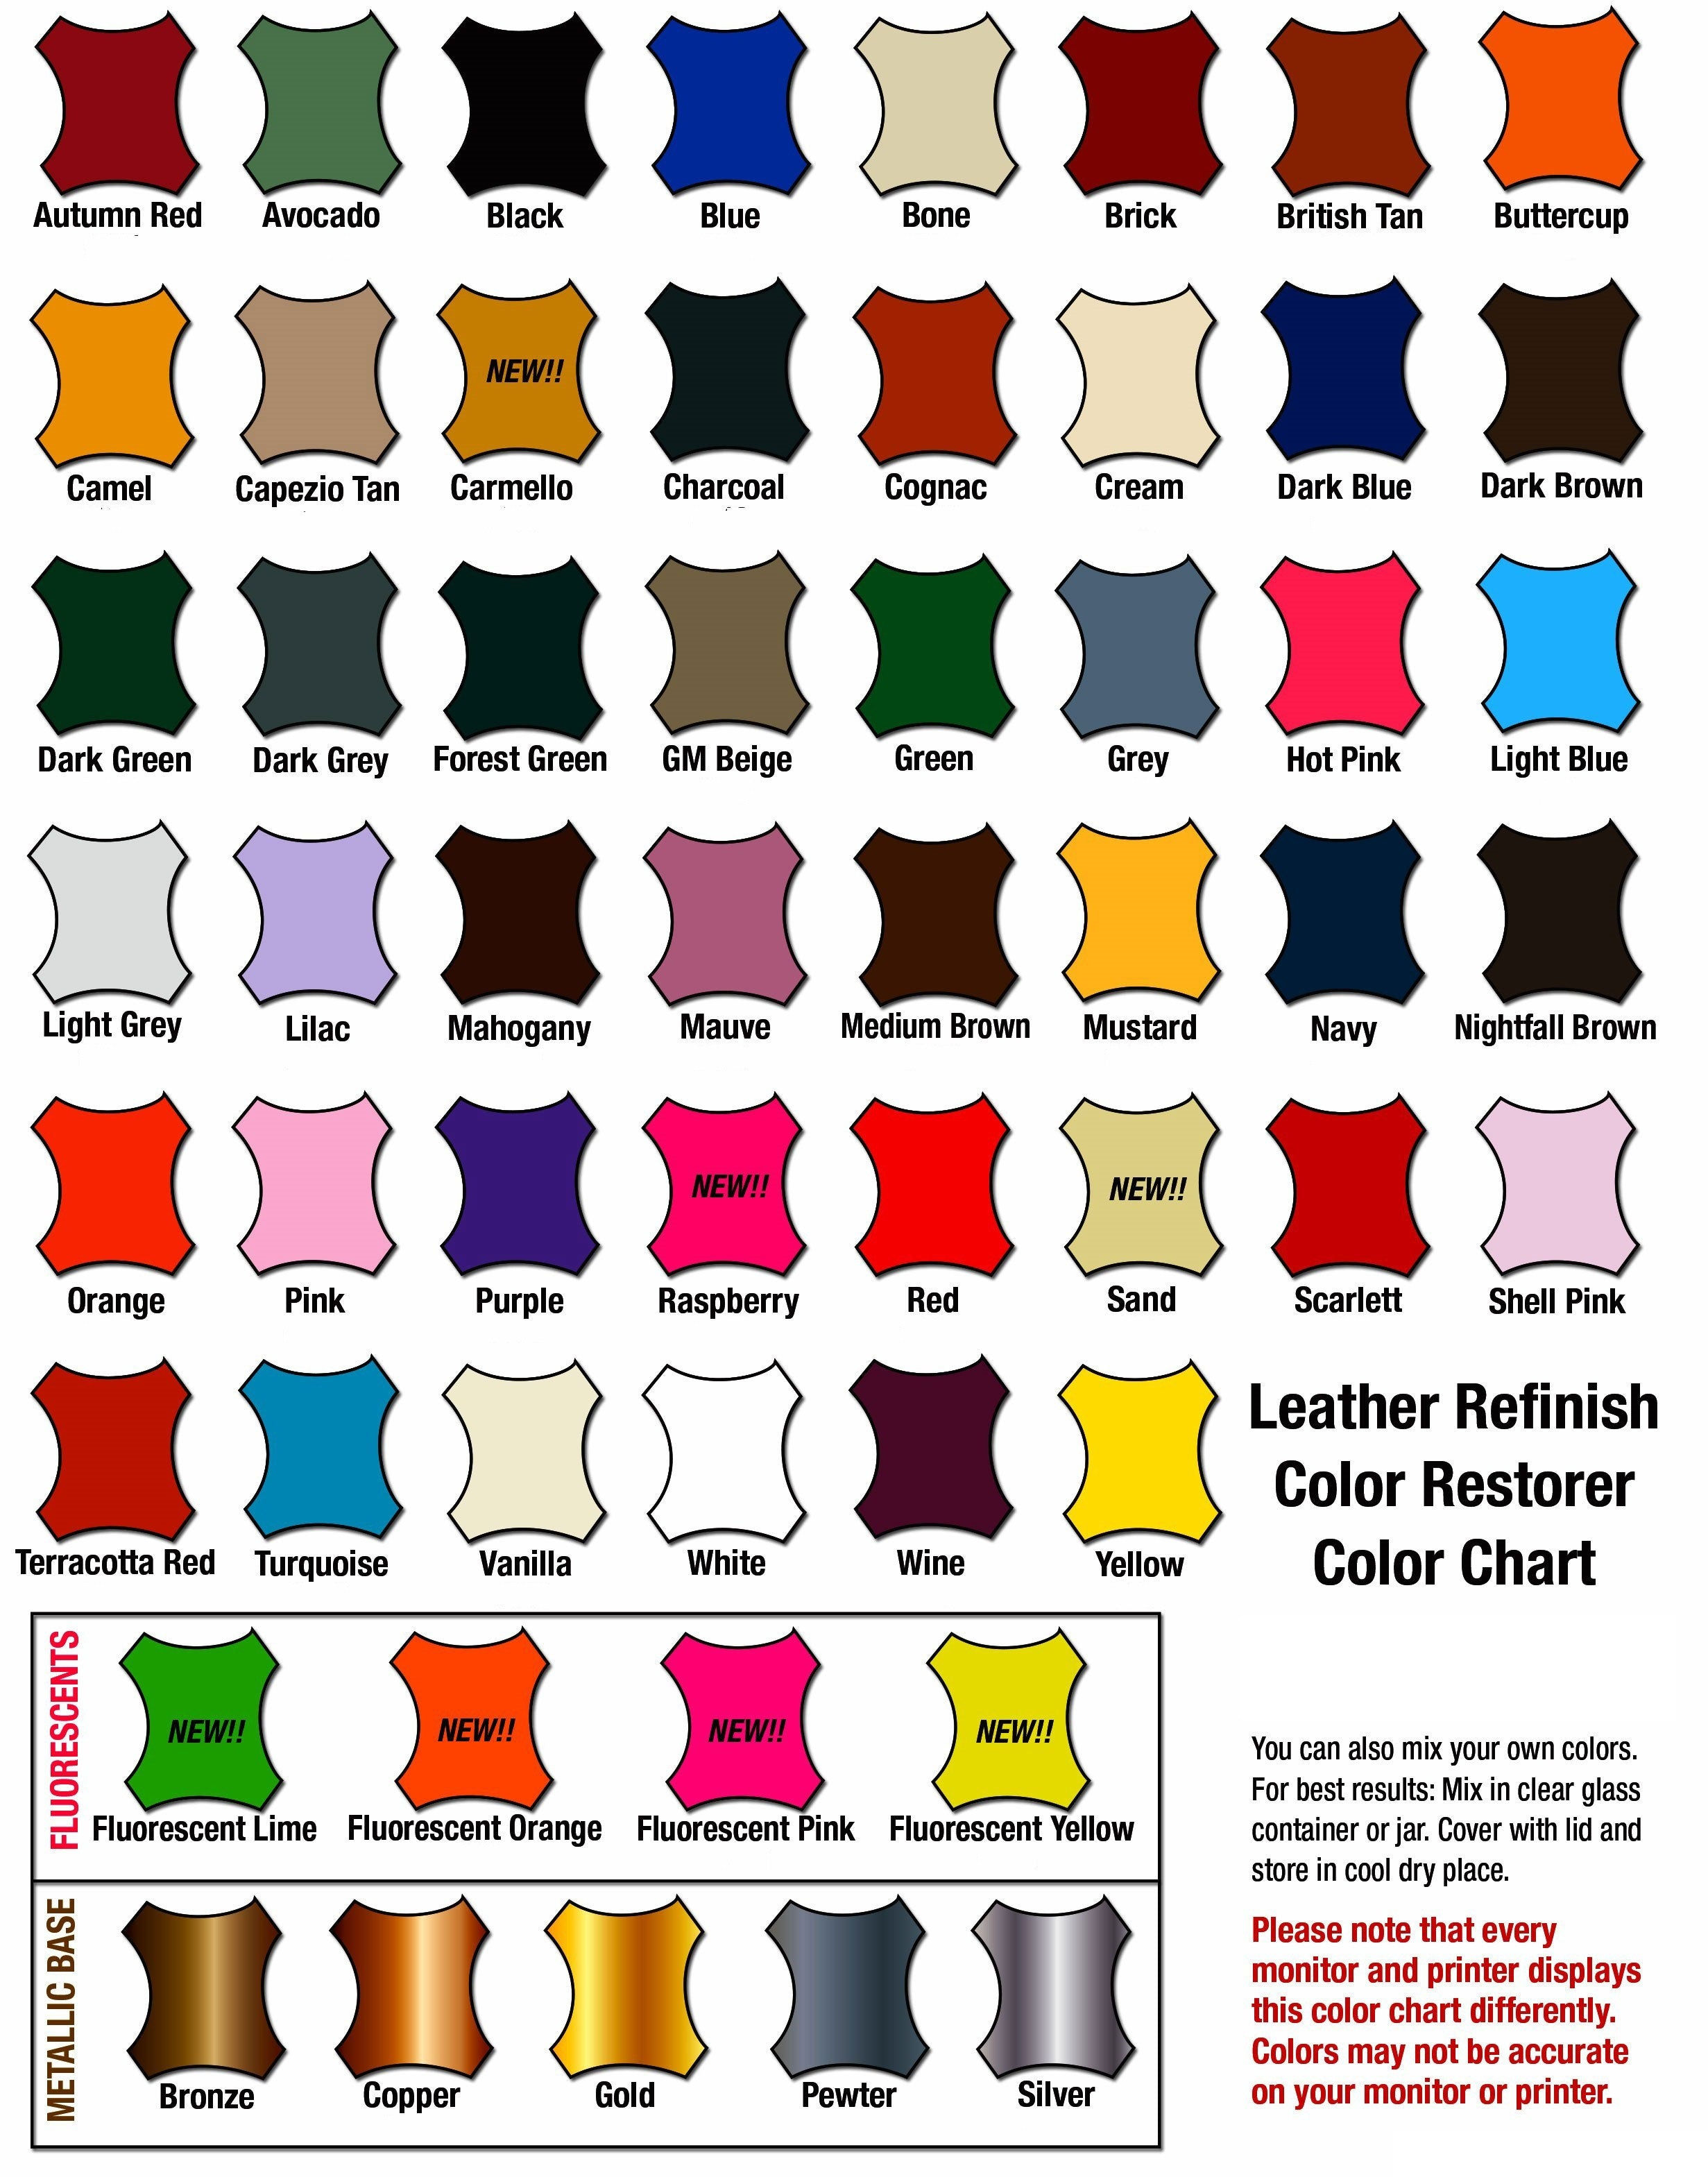 Leather refinish color chart nvjuhfo Image collections